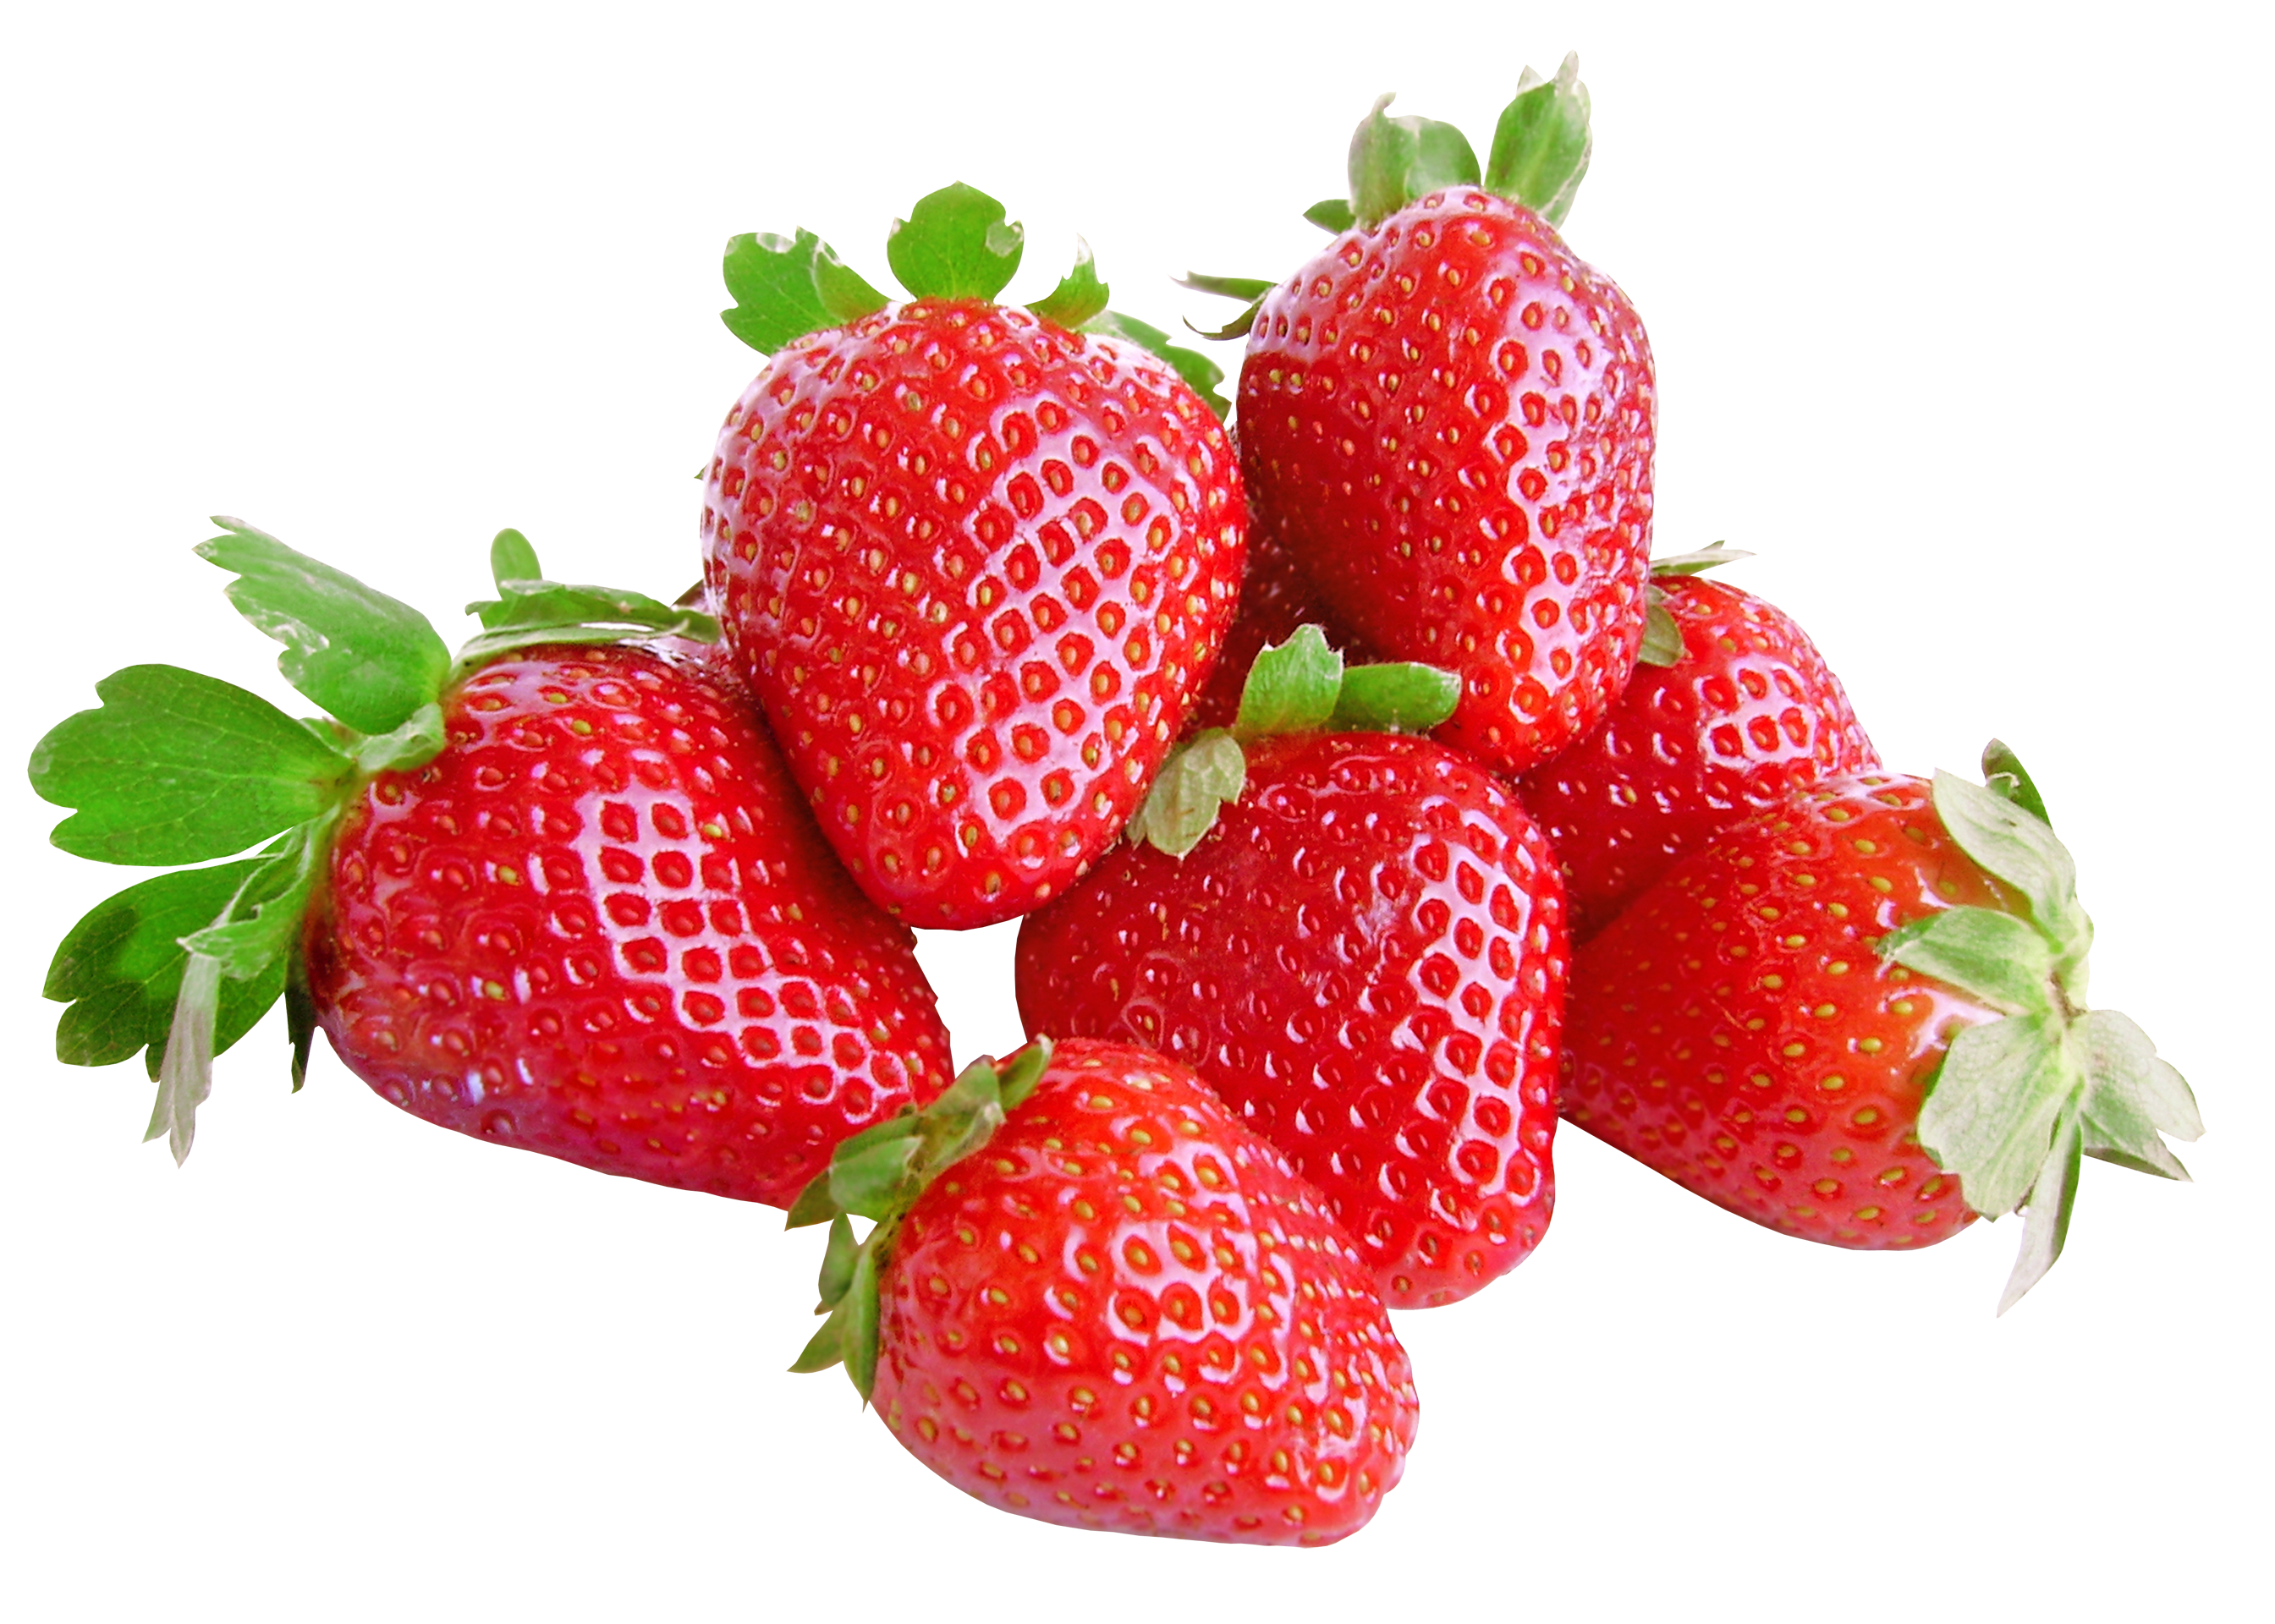 Strawberry Png image #22932